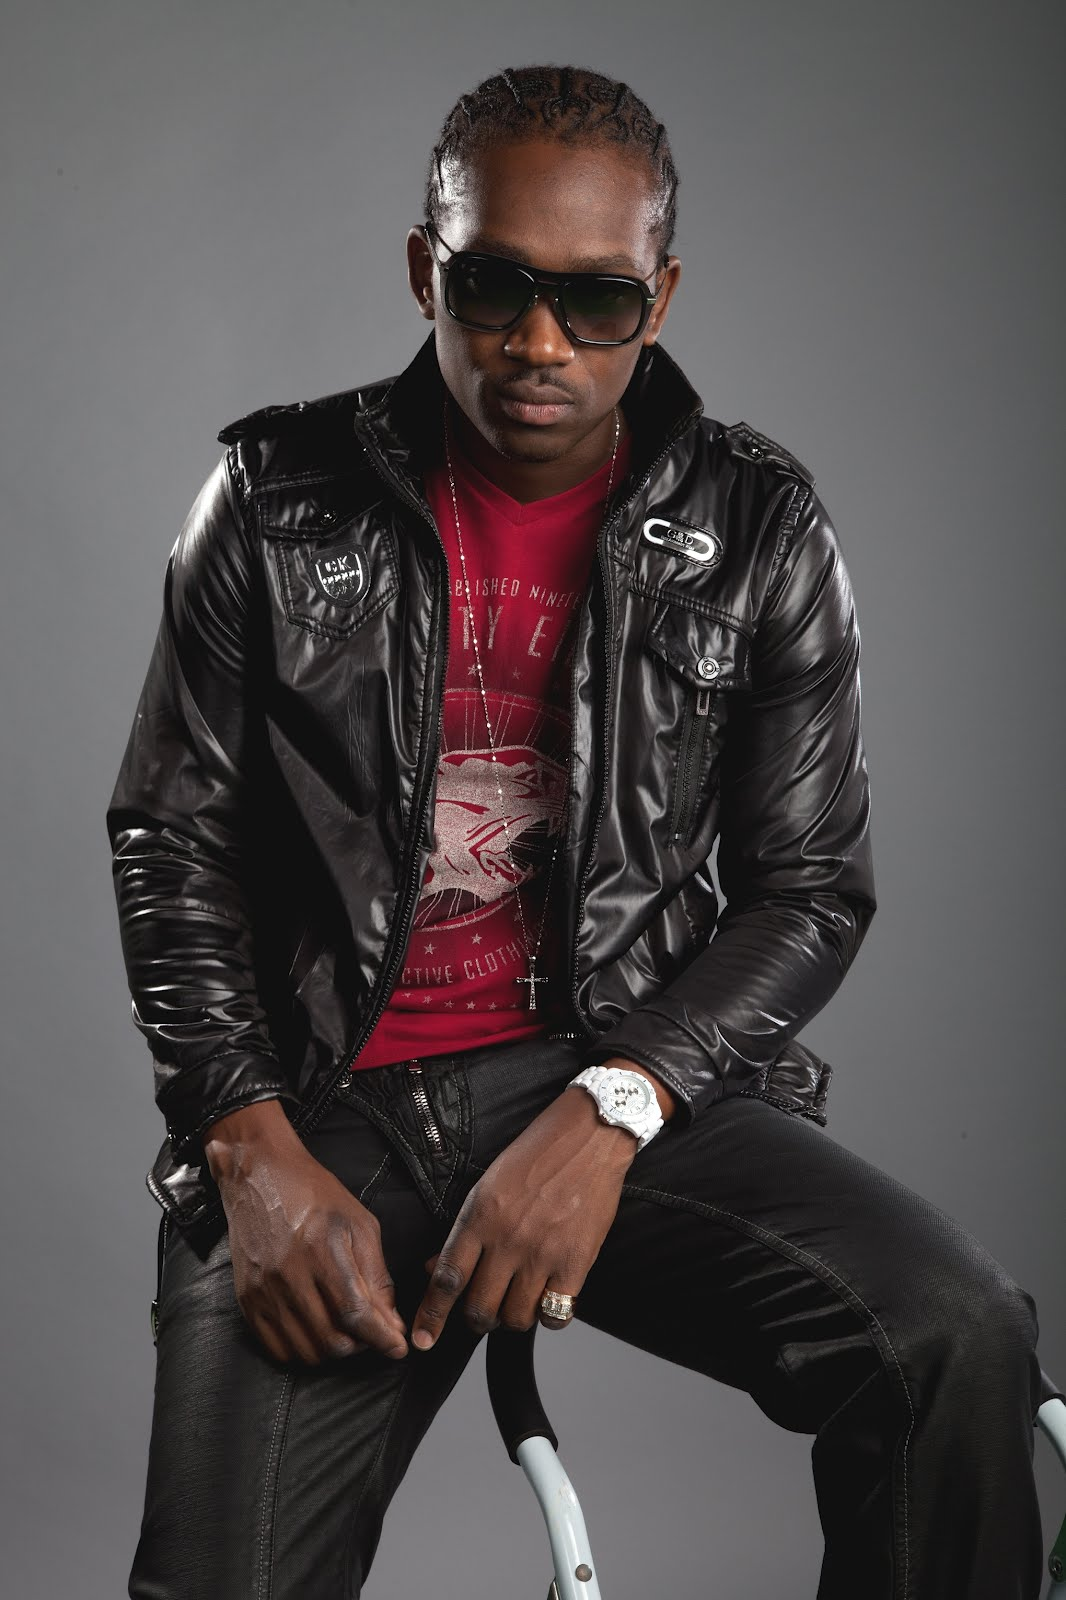 Hey girl busy signal mp3 download